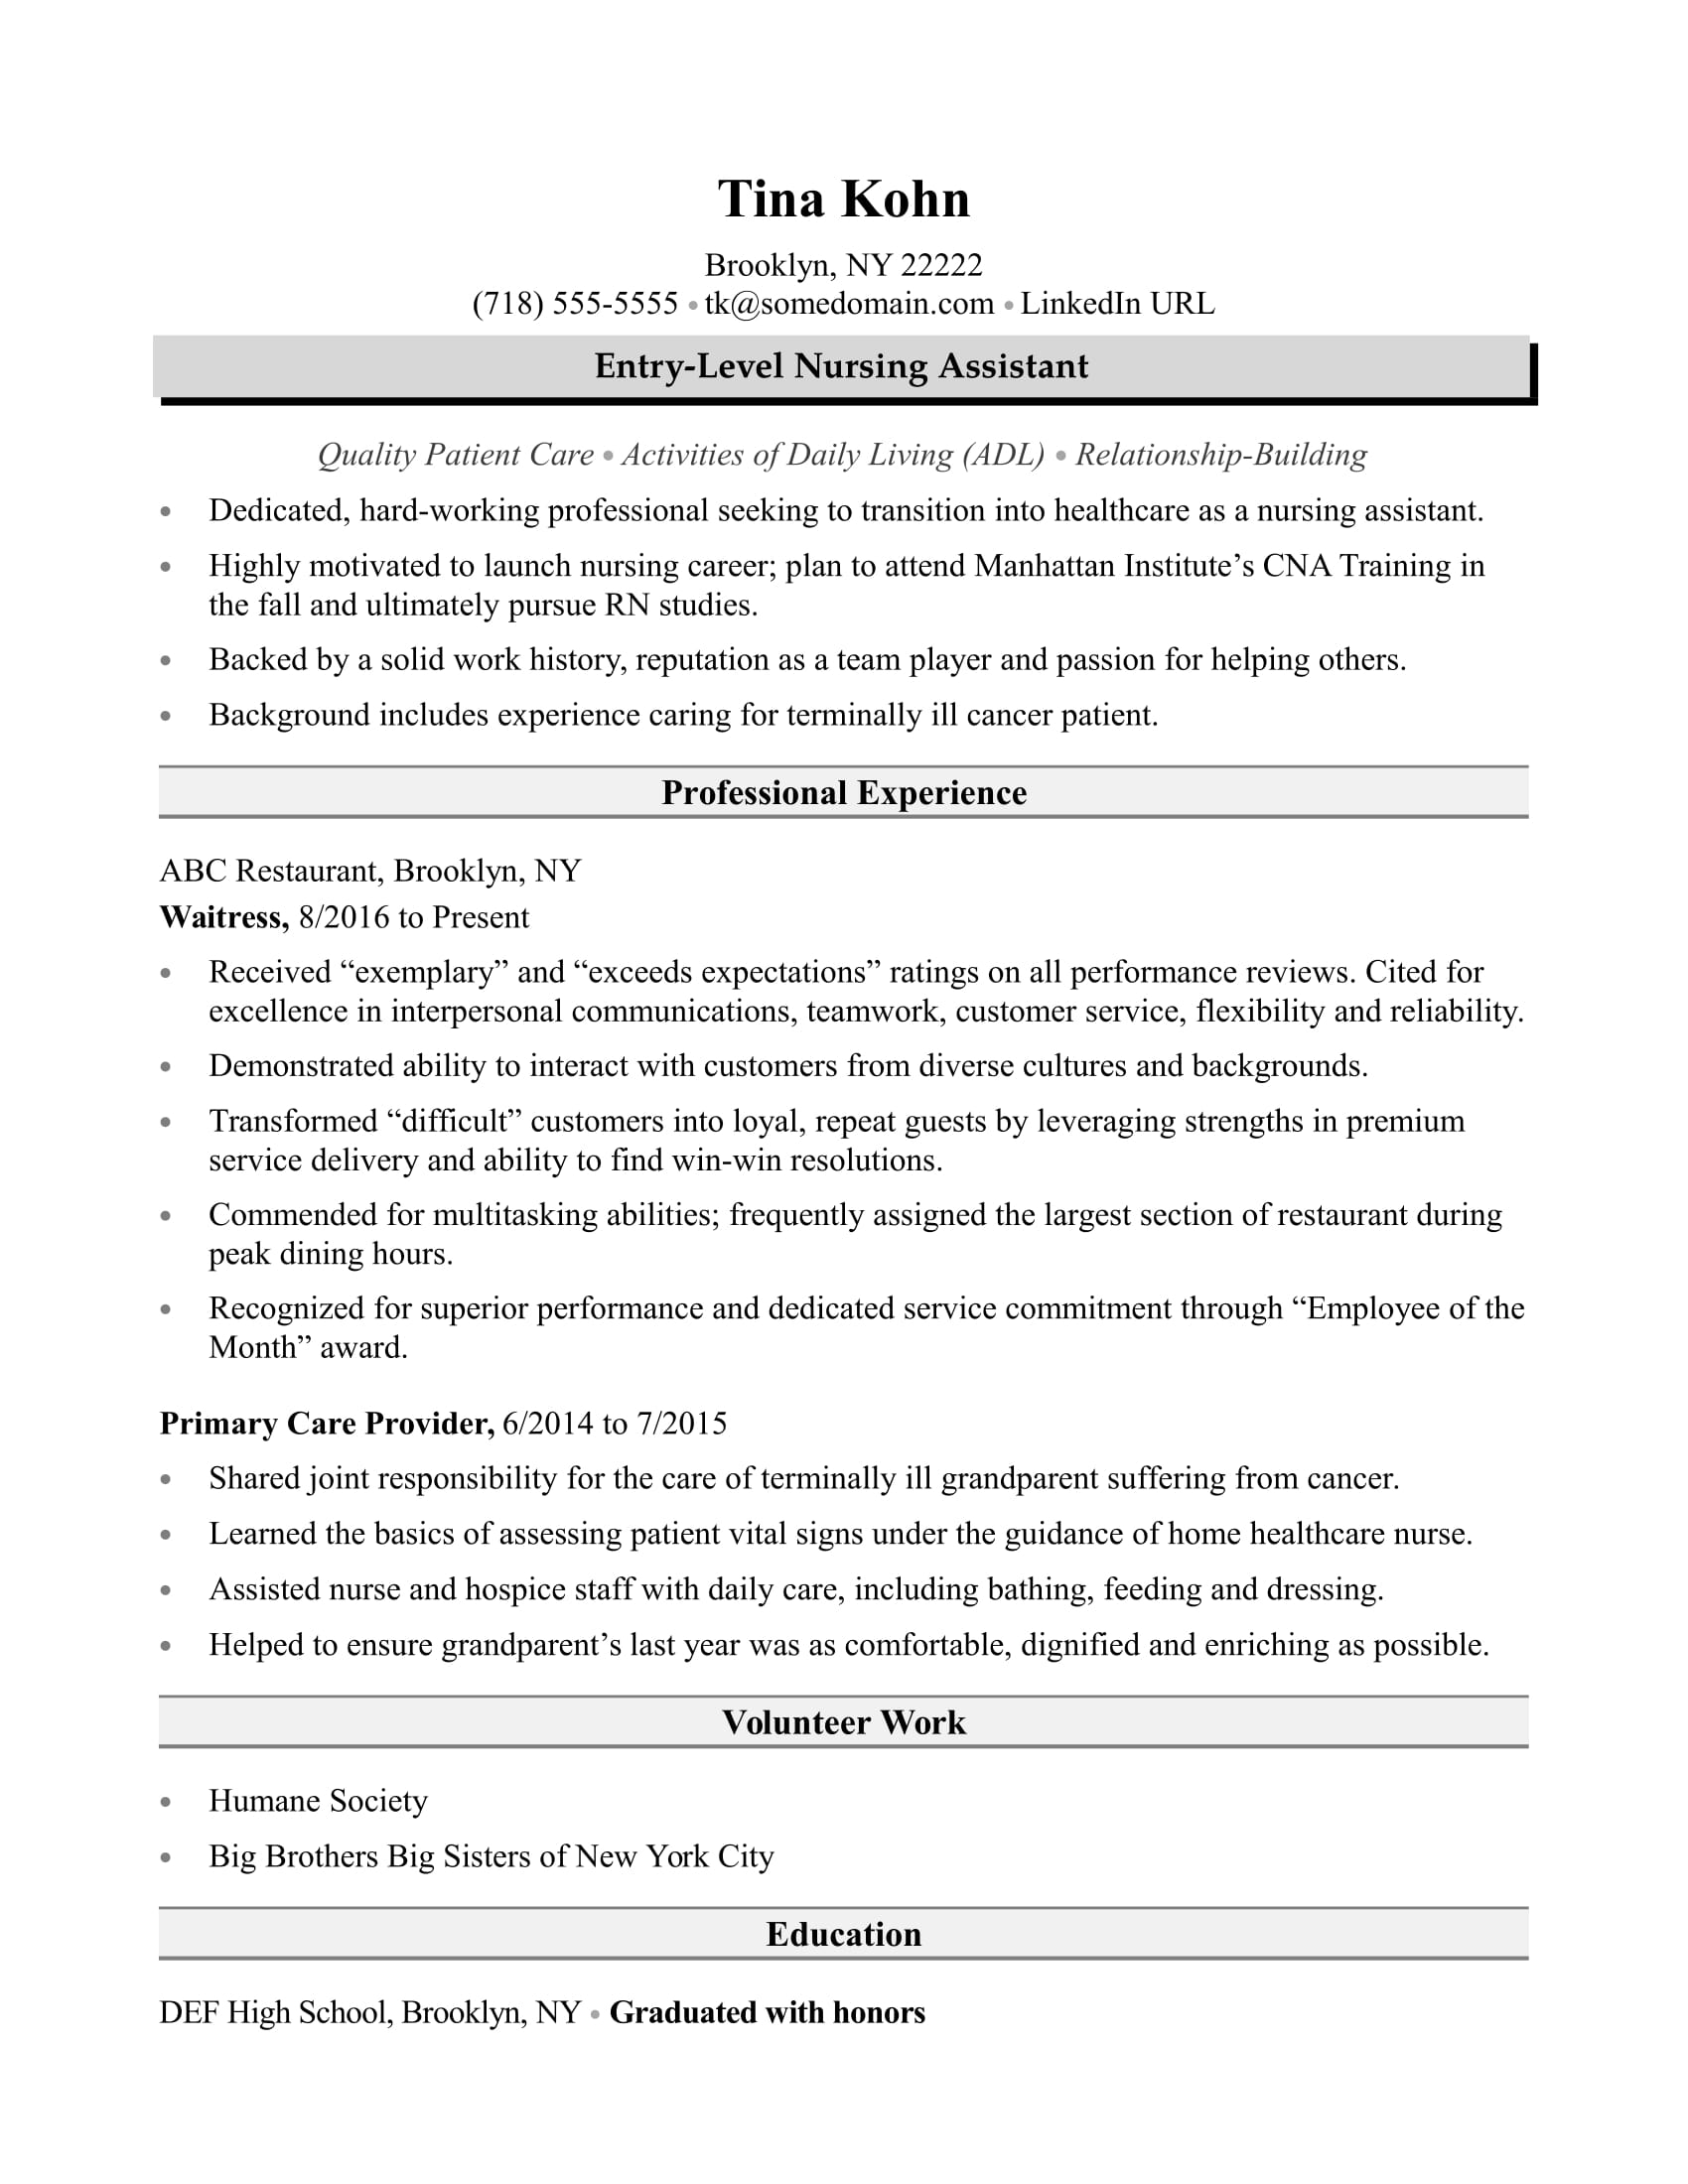 nursing assistant resume sample monster entry level nurse targeted template vs abstract Resume Entry Level Nurse Resume